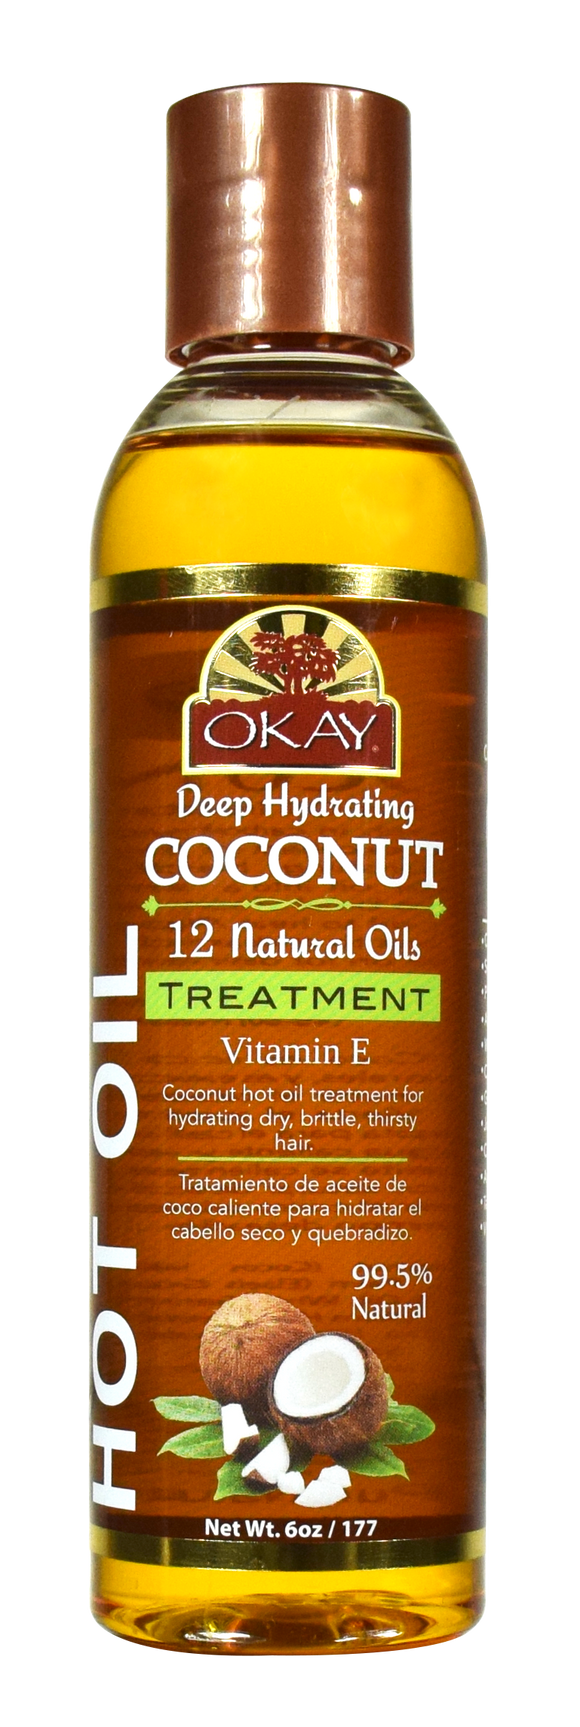 OKAY Coconut Hot Oil Treatment Deep Hydrating - Conditioning And Nourishing - Prevents Breakage- Restores Hair - Smoothes Cuticle-Improves Hair Appearance- Silicone, Paraben Free For All Hair Types and Textures - Made in USA 6oz / 177ml